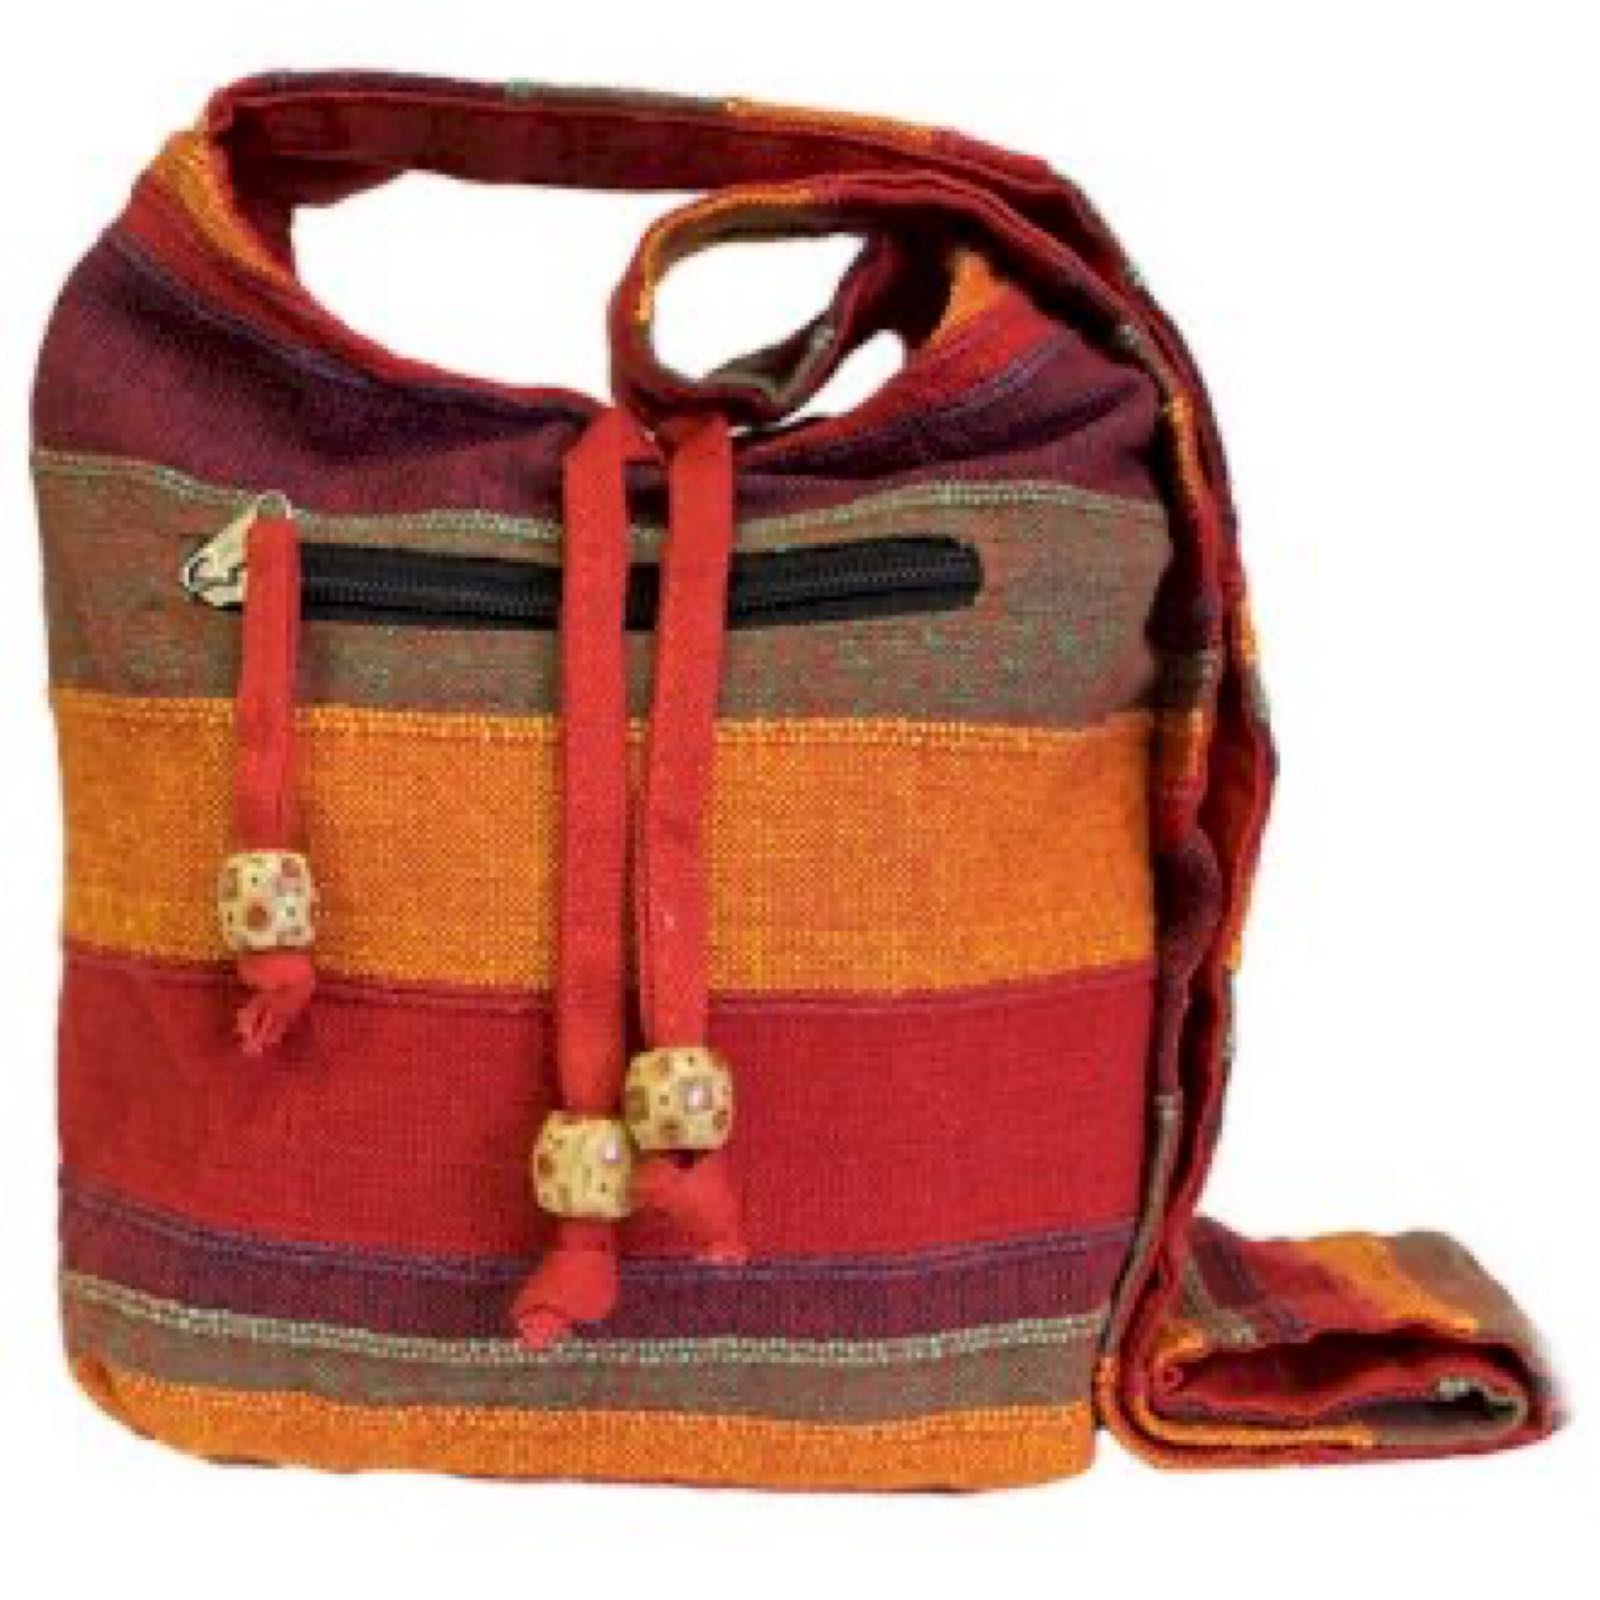 Sunset Reds Nepal Sling Bag